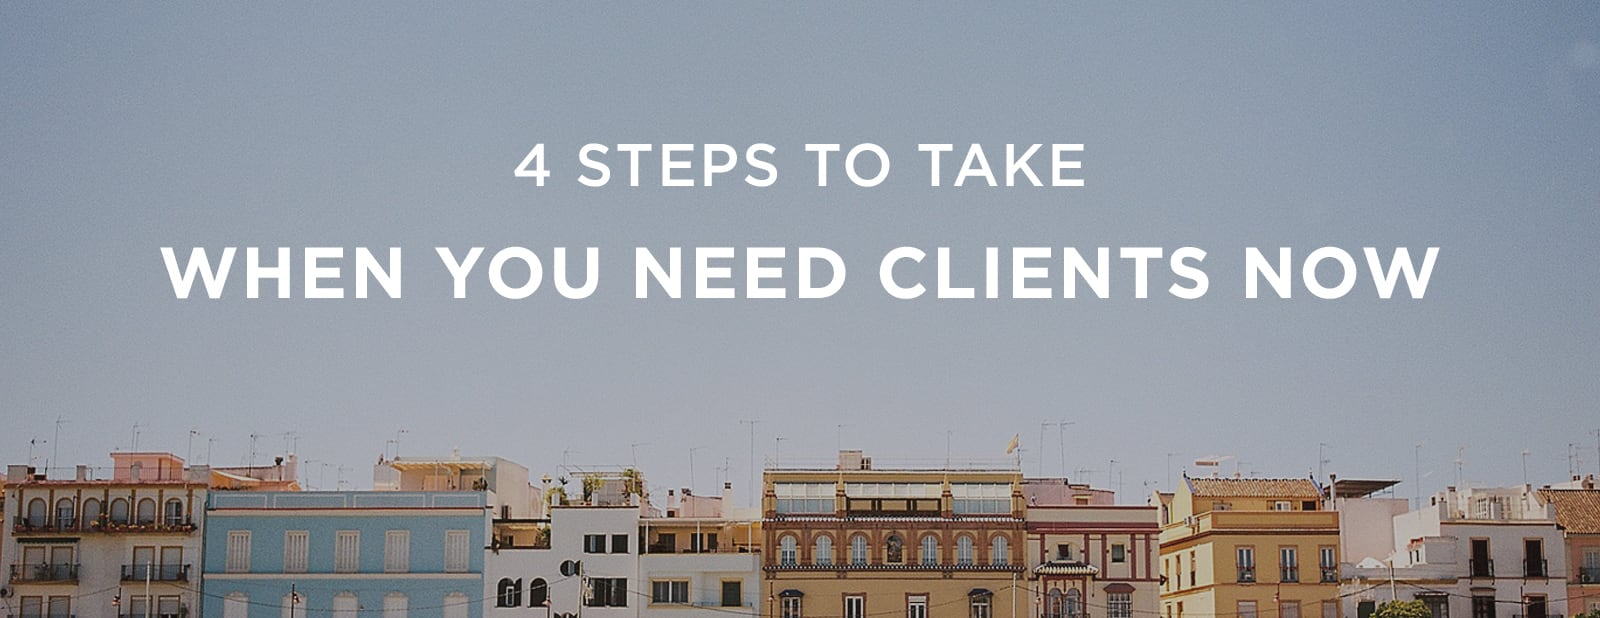 4 Steps When You Need Clients Now   via the Rising Tide Society